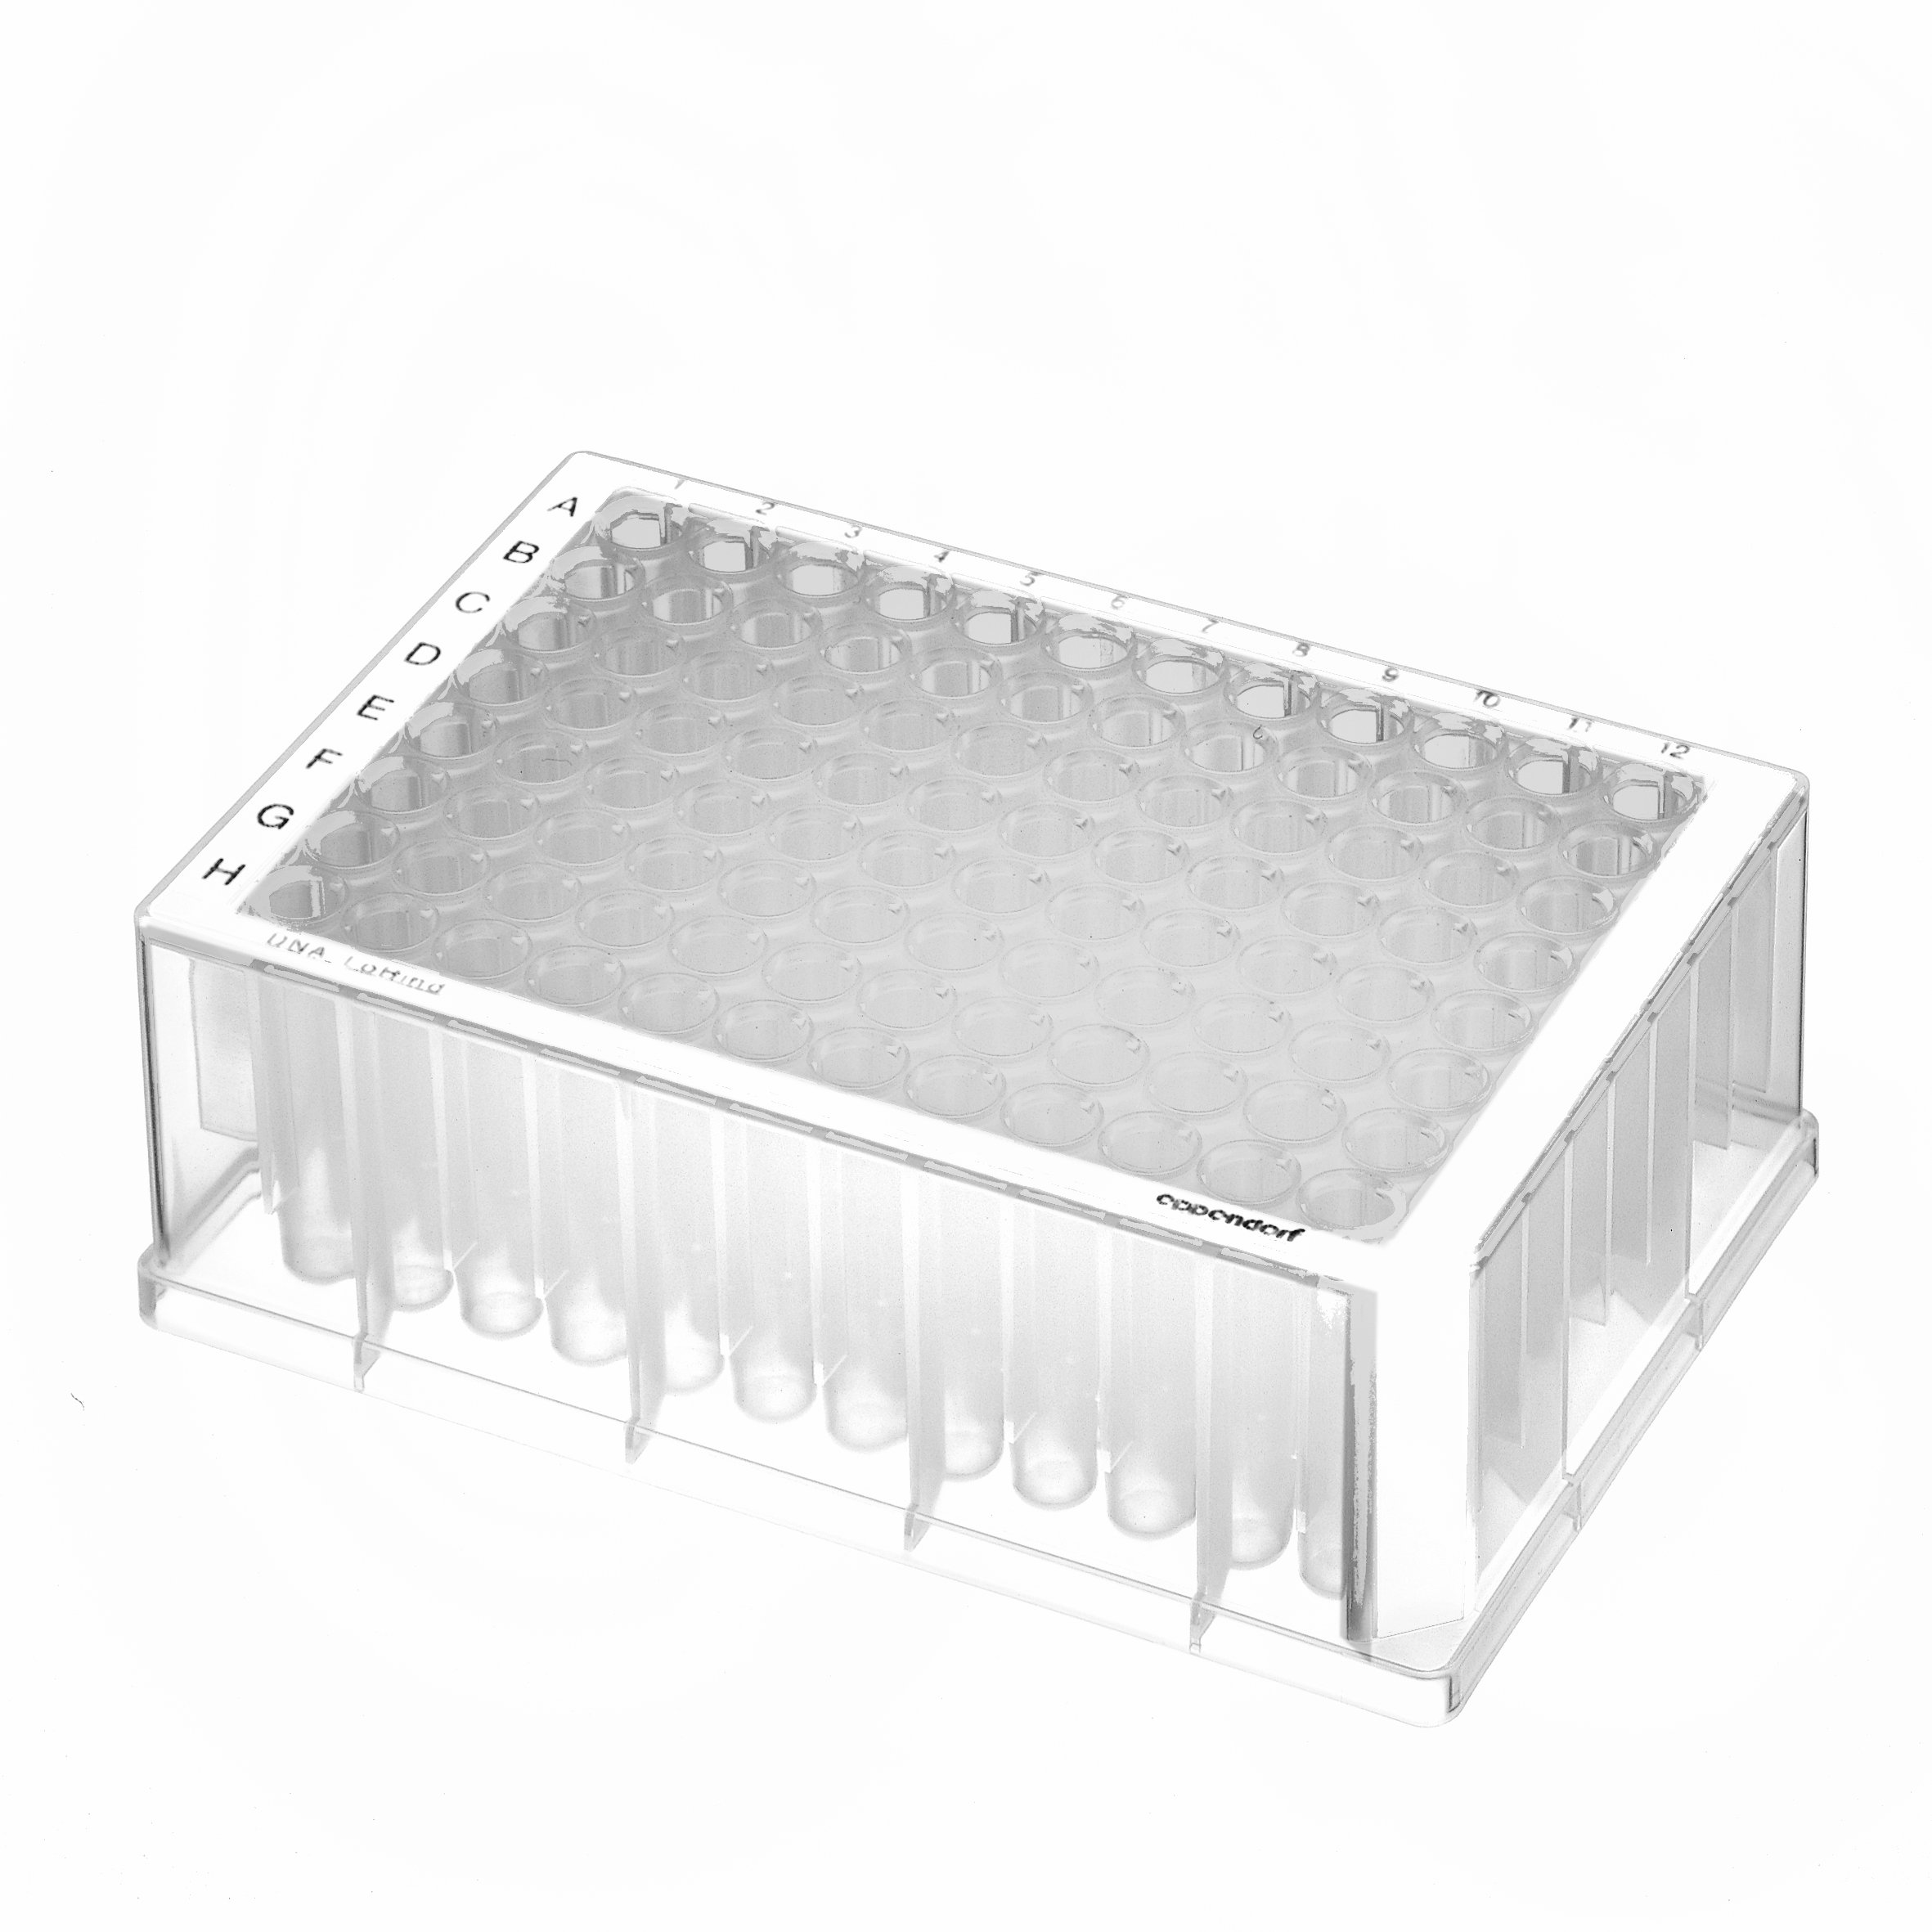 Eppendorf 951032905 Protein LoBind Deepwell Plate with 96 Wells, 1000 microliter Volume, White Border (Pack of 20)